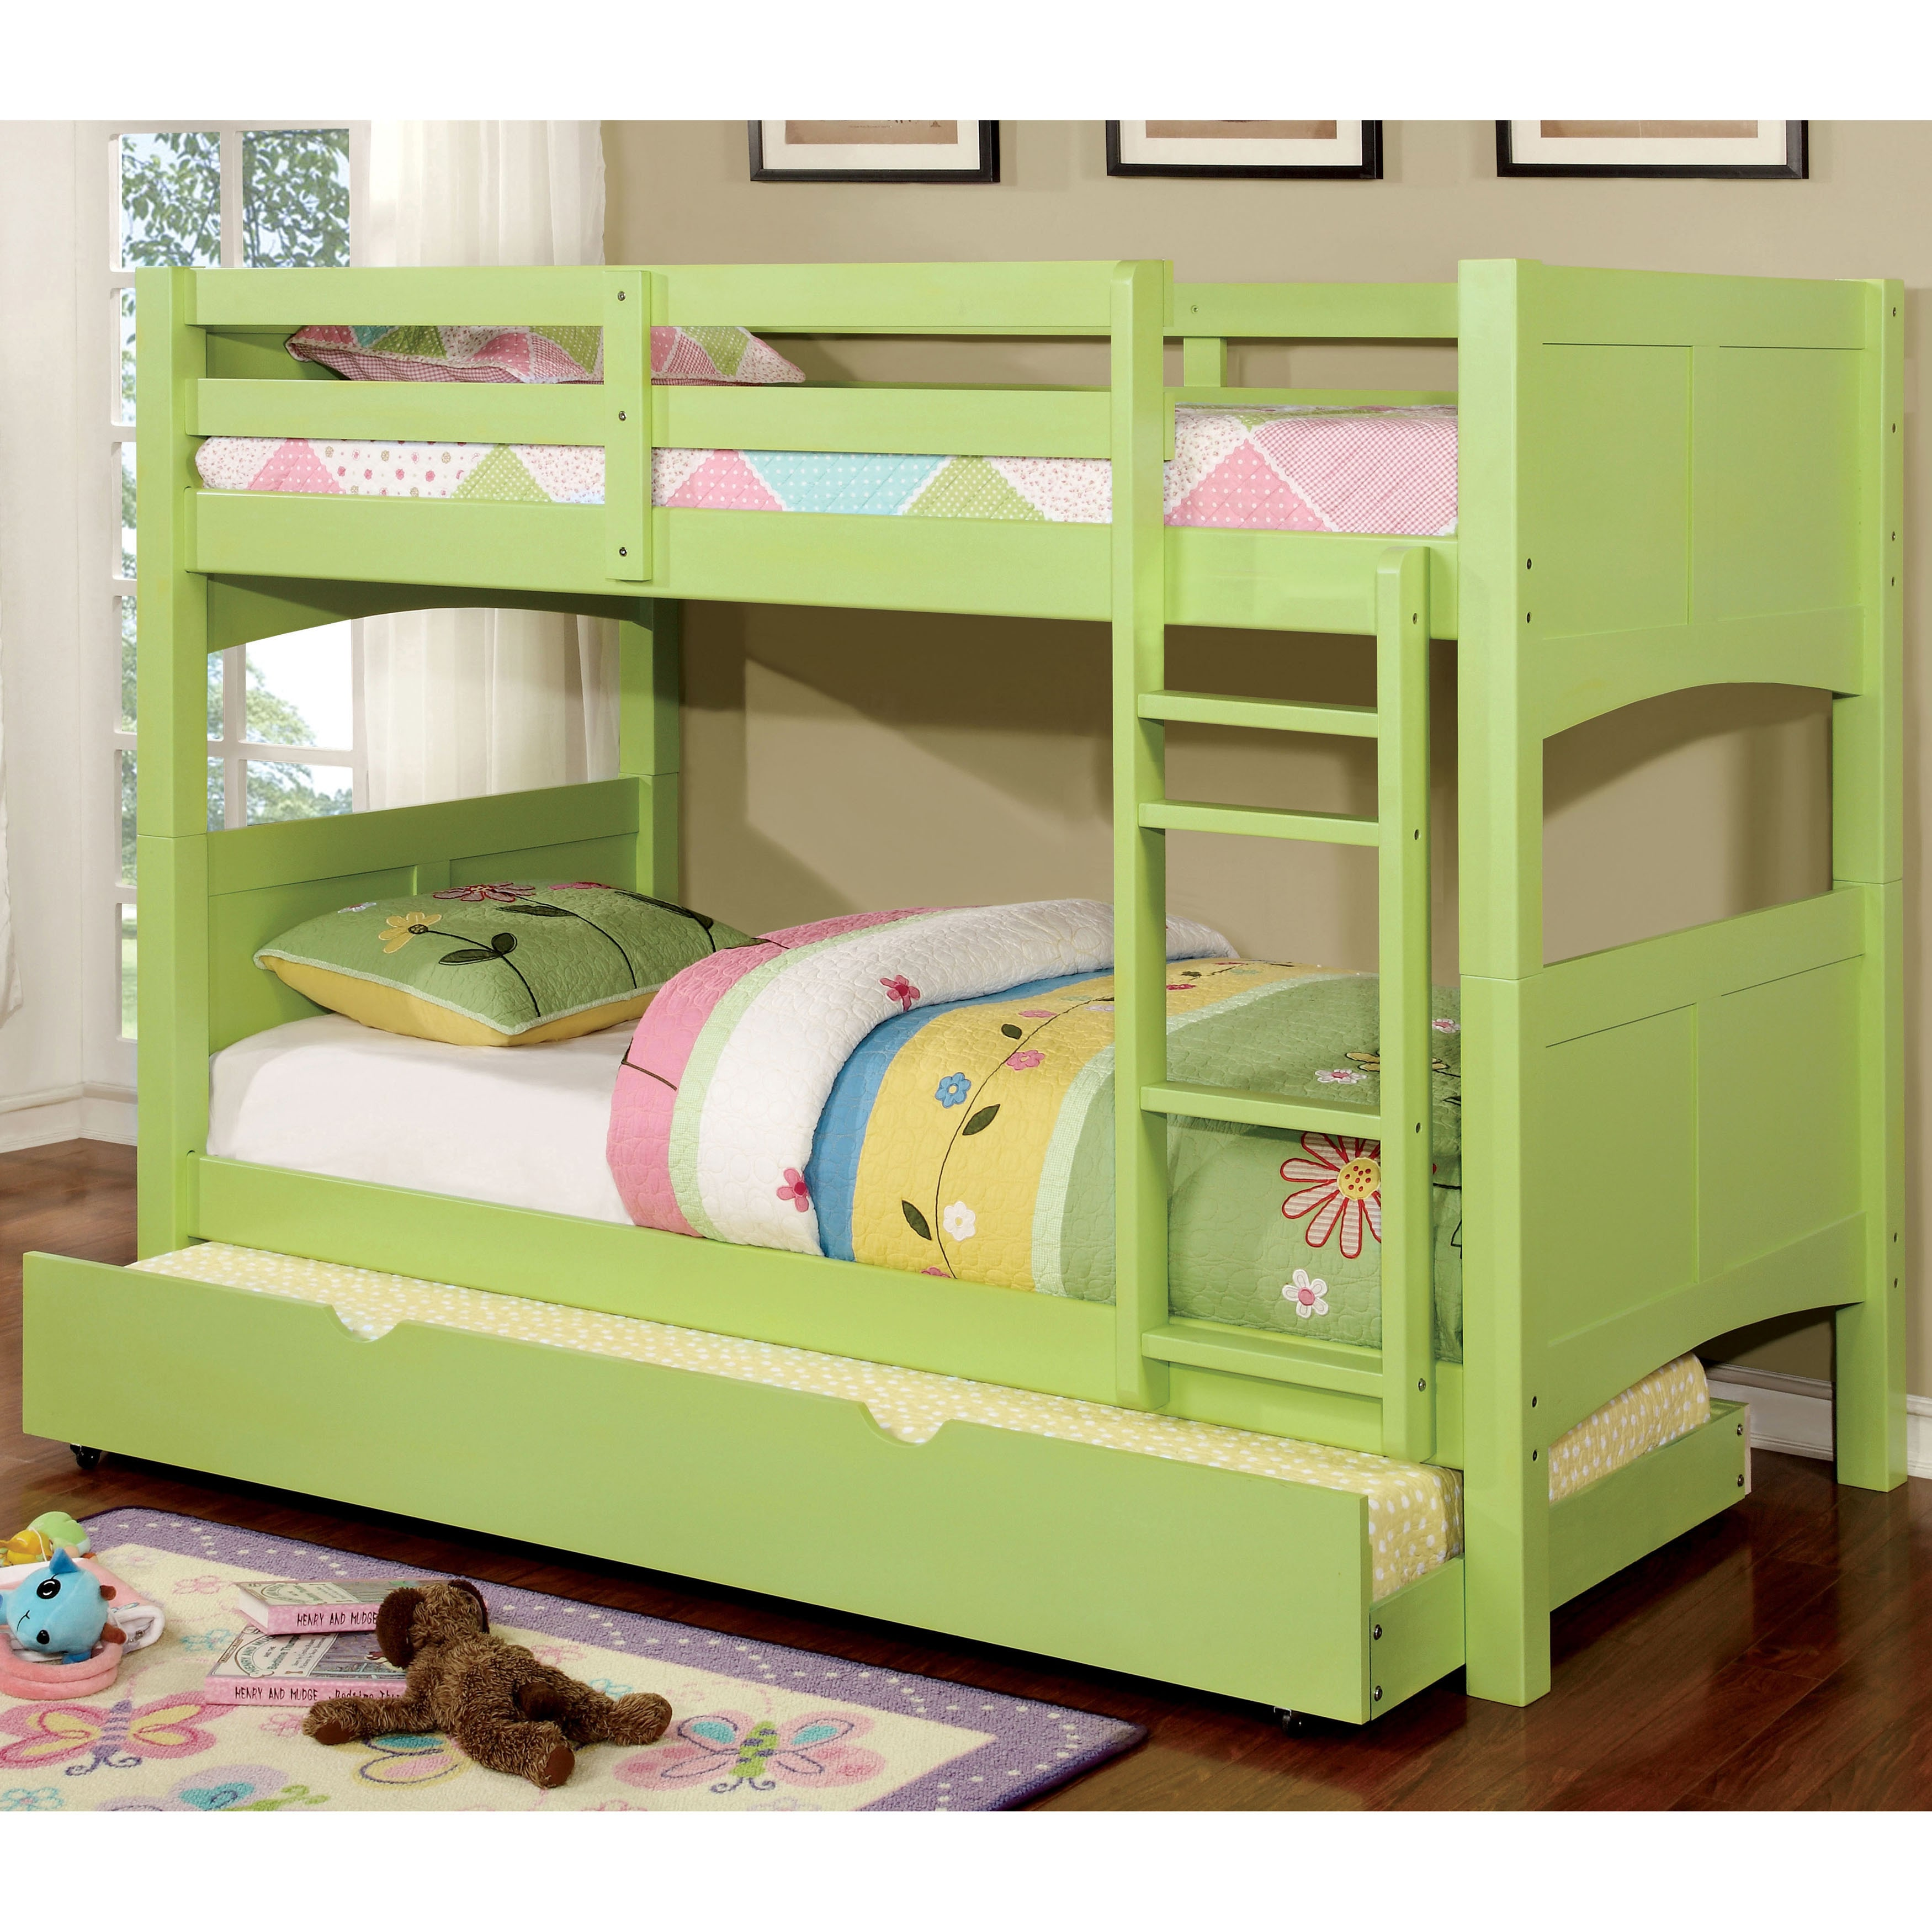 Furniture of America Colorpop Twin Modern 2-piece Bunk Bed with Trundle Set by Furniture of America